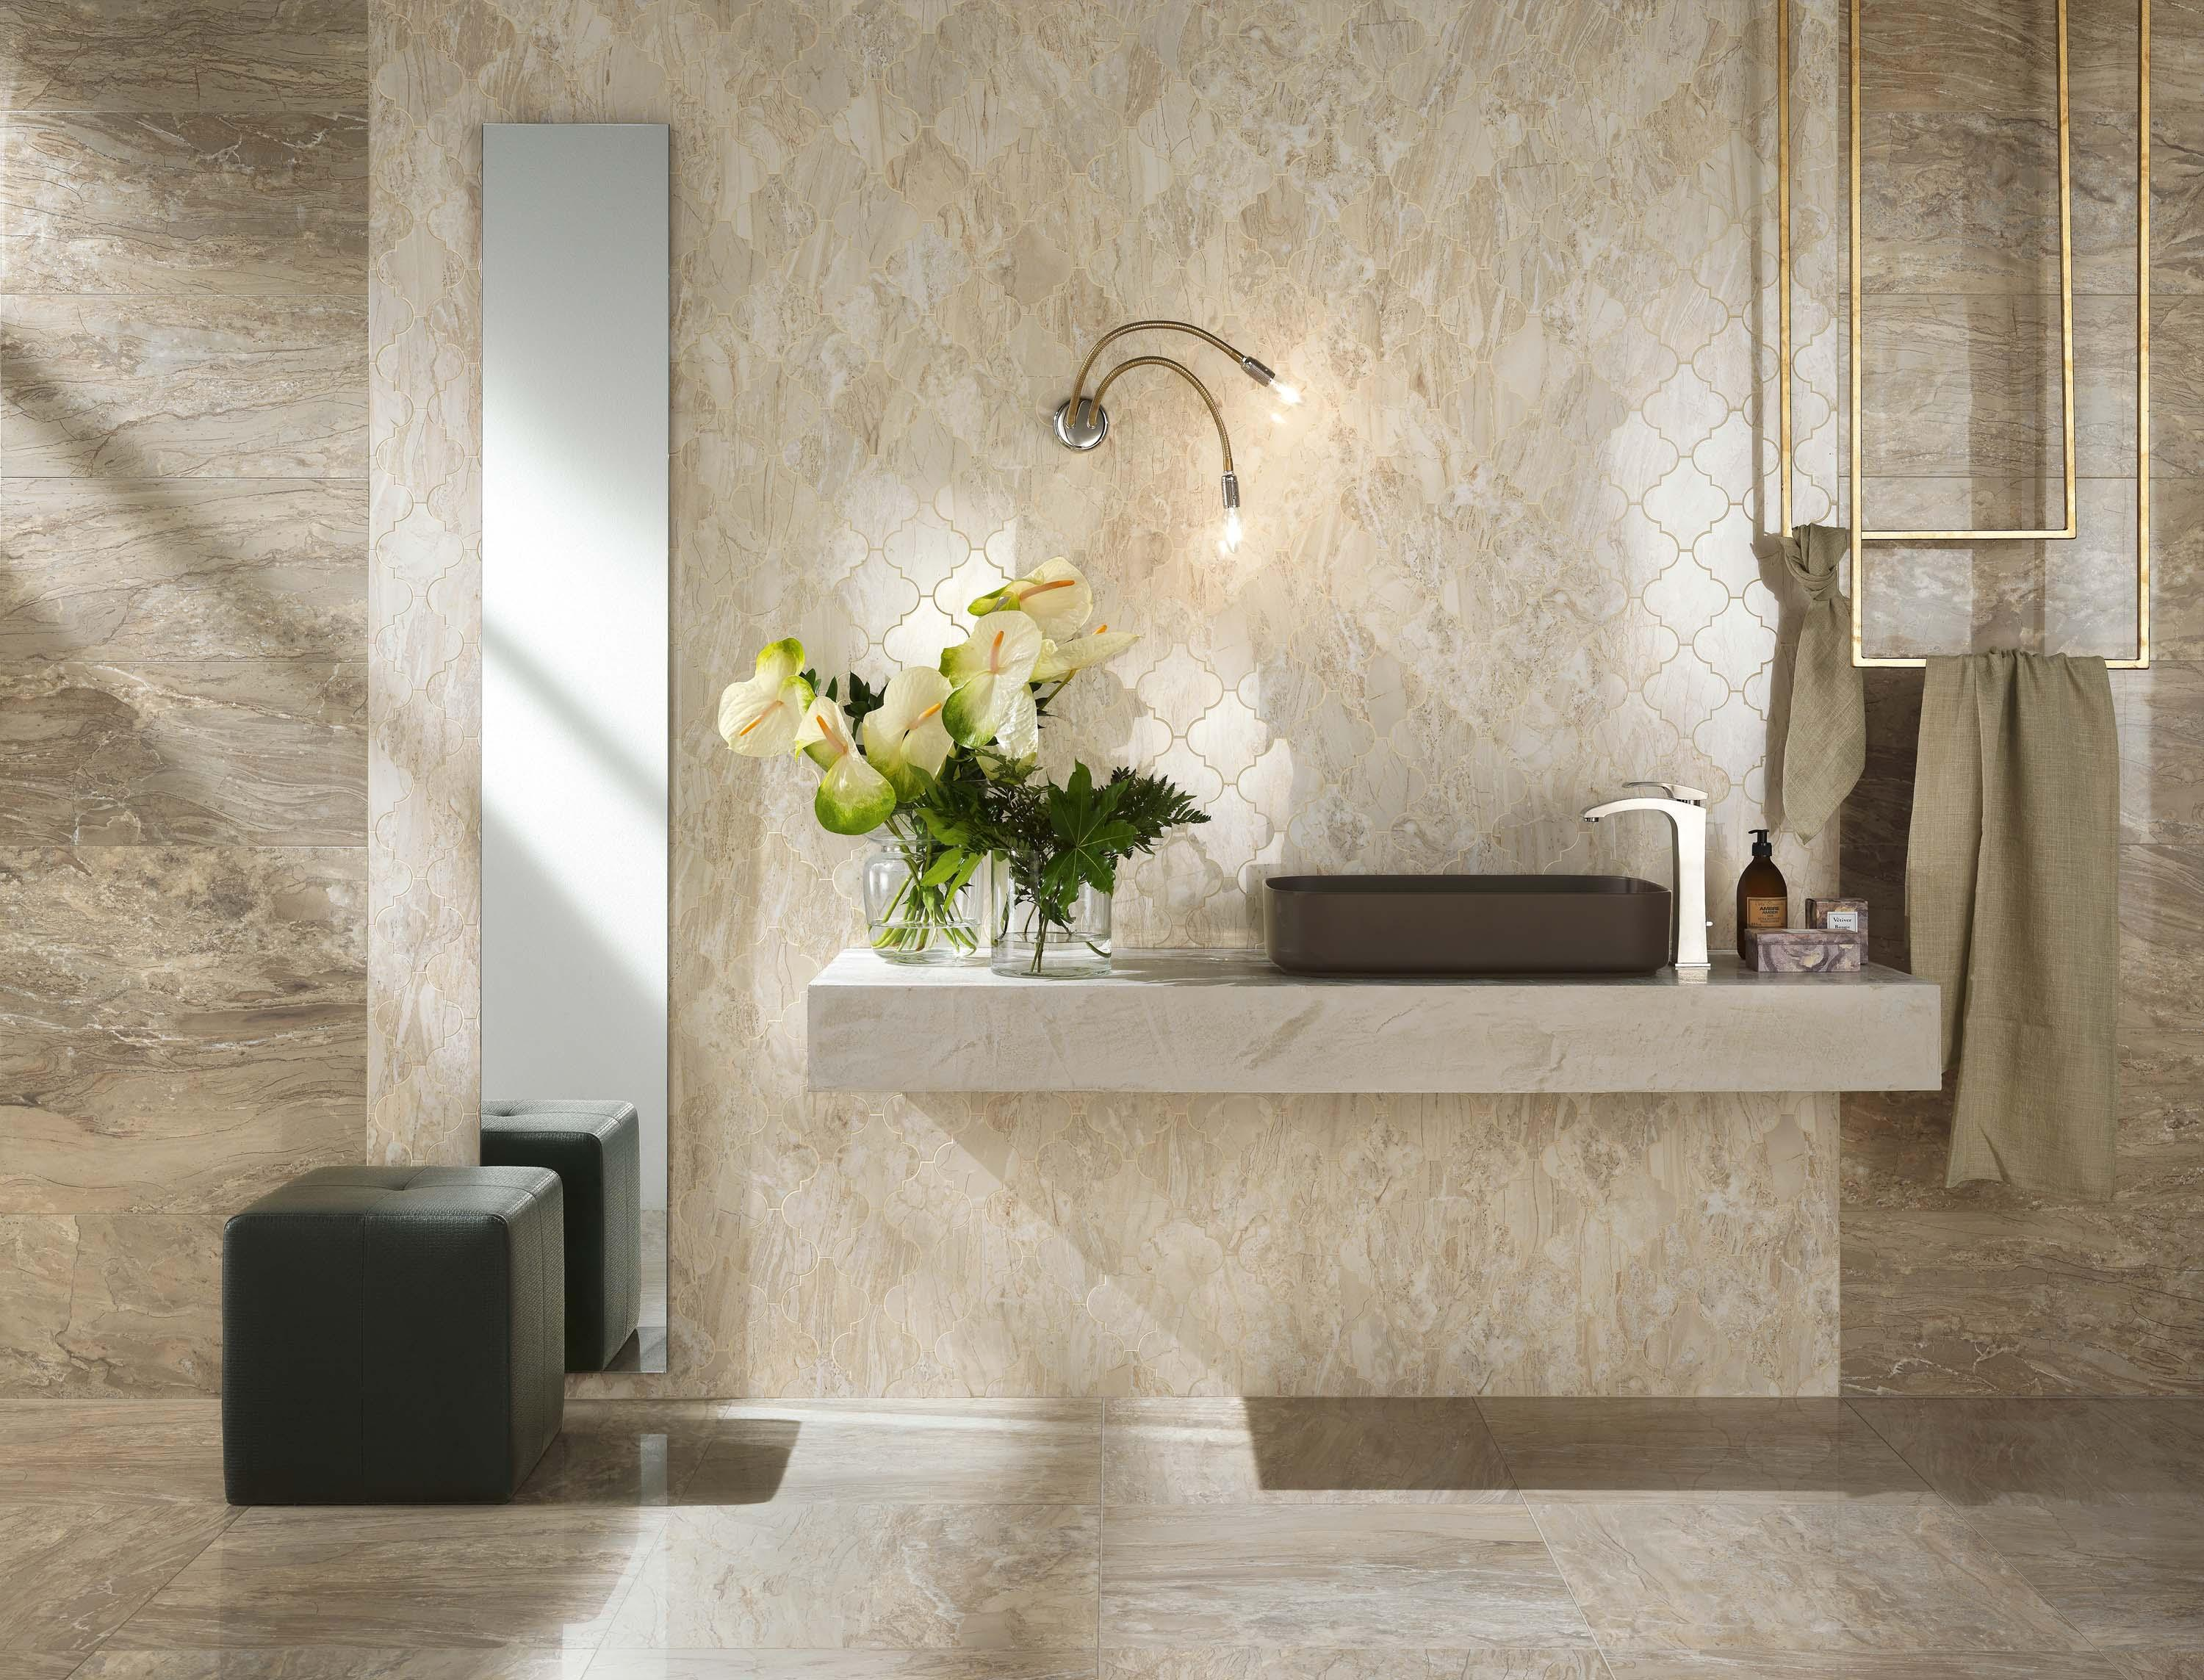 Imperial Calacatta Beige Ceramic Tiles From Novabell